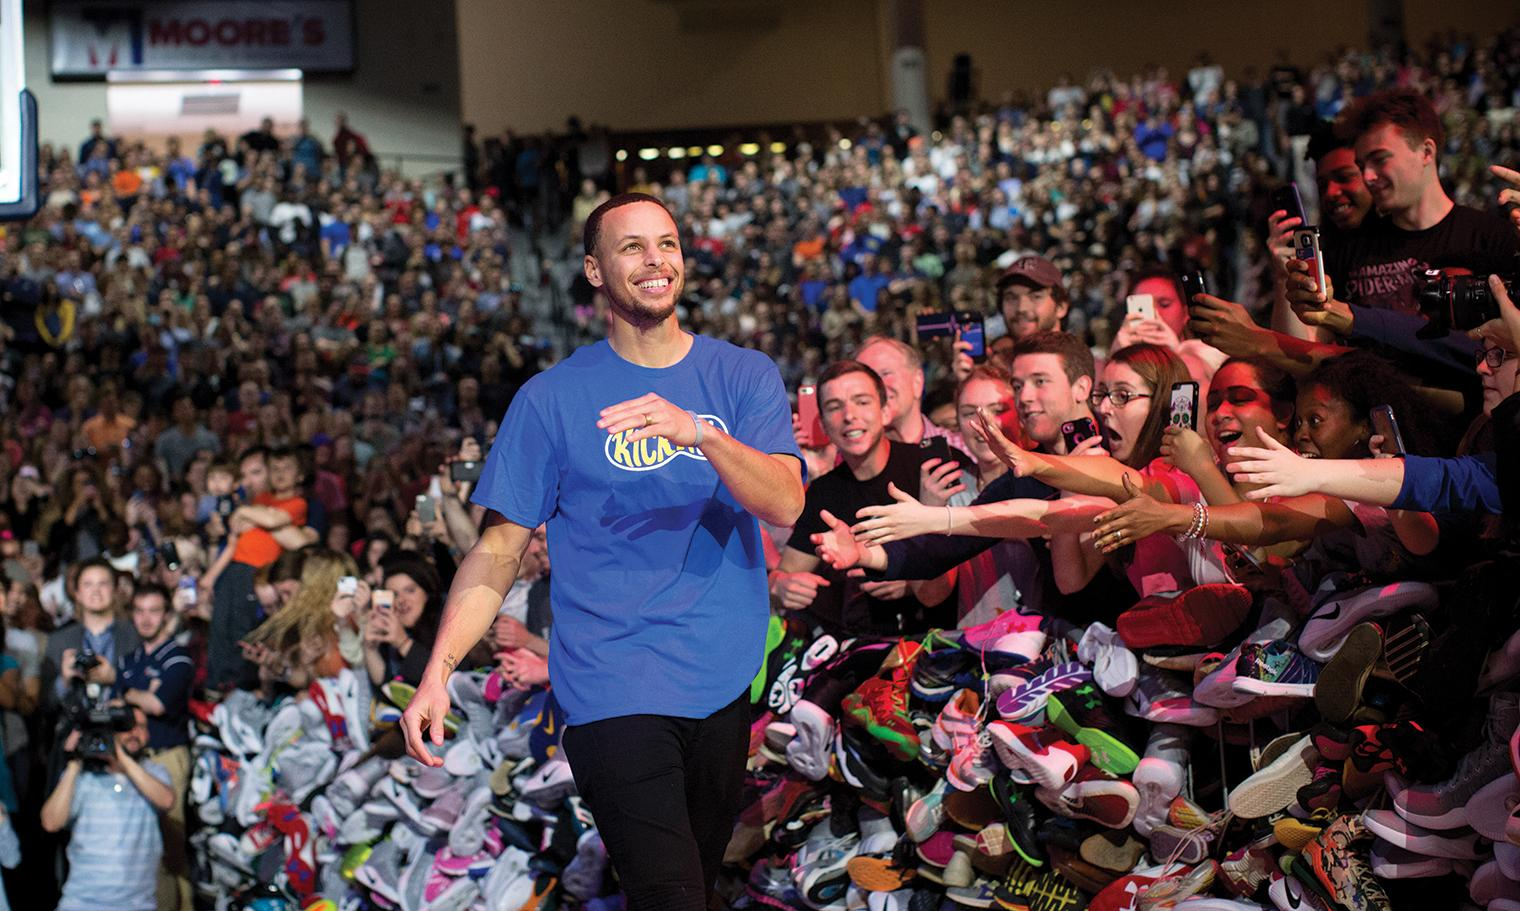 Steph Curry and Liberty University Graduate Donate Thousands of Shoes to Children in Need